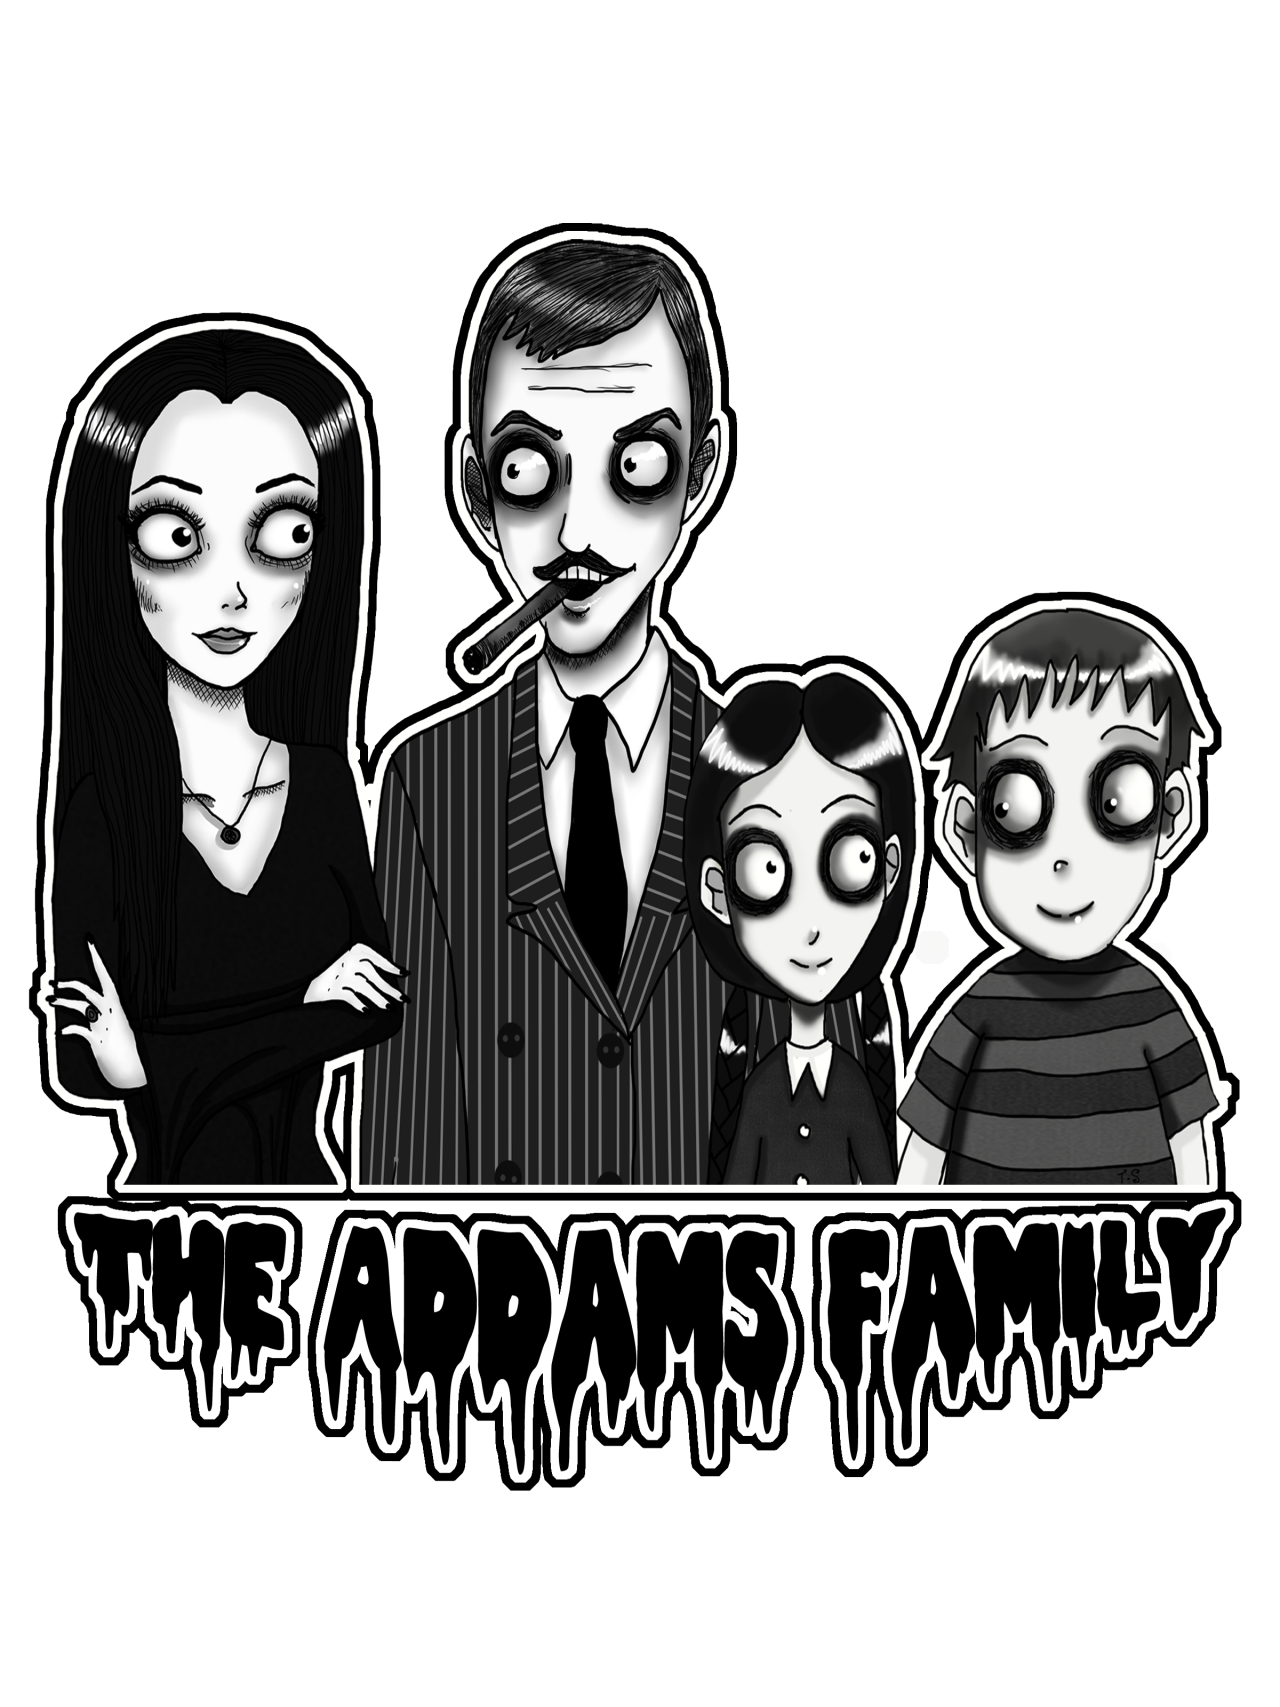 Speedpaint drawing addams family. Ravenous decay artistic anthesis